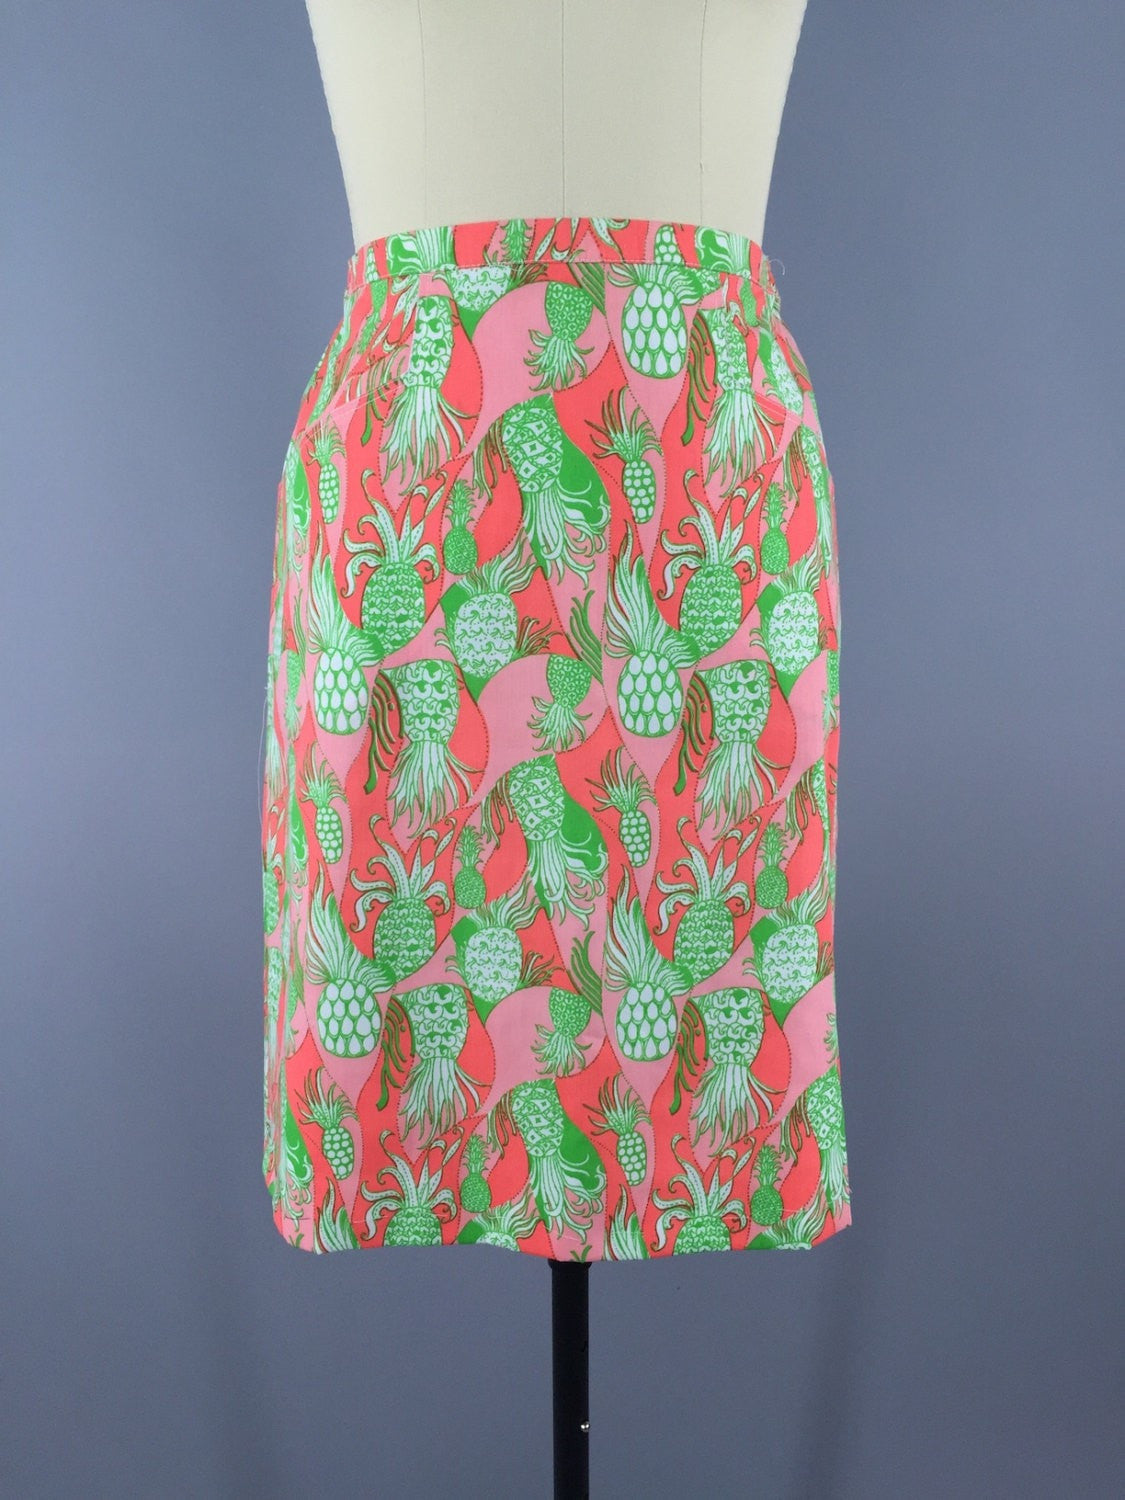 Vintage 1960s Pineapple Novelty Print Skirt Bottoms ThisBlueBird - Sale